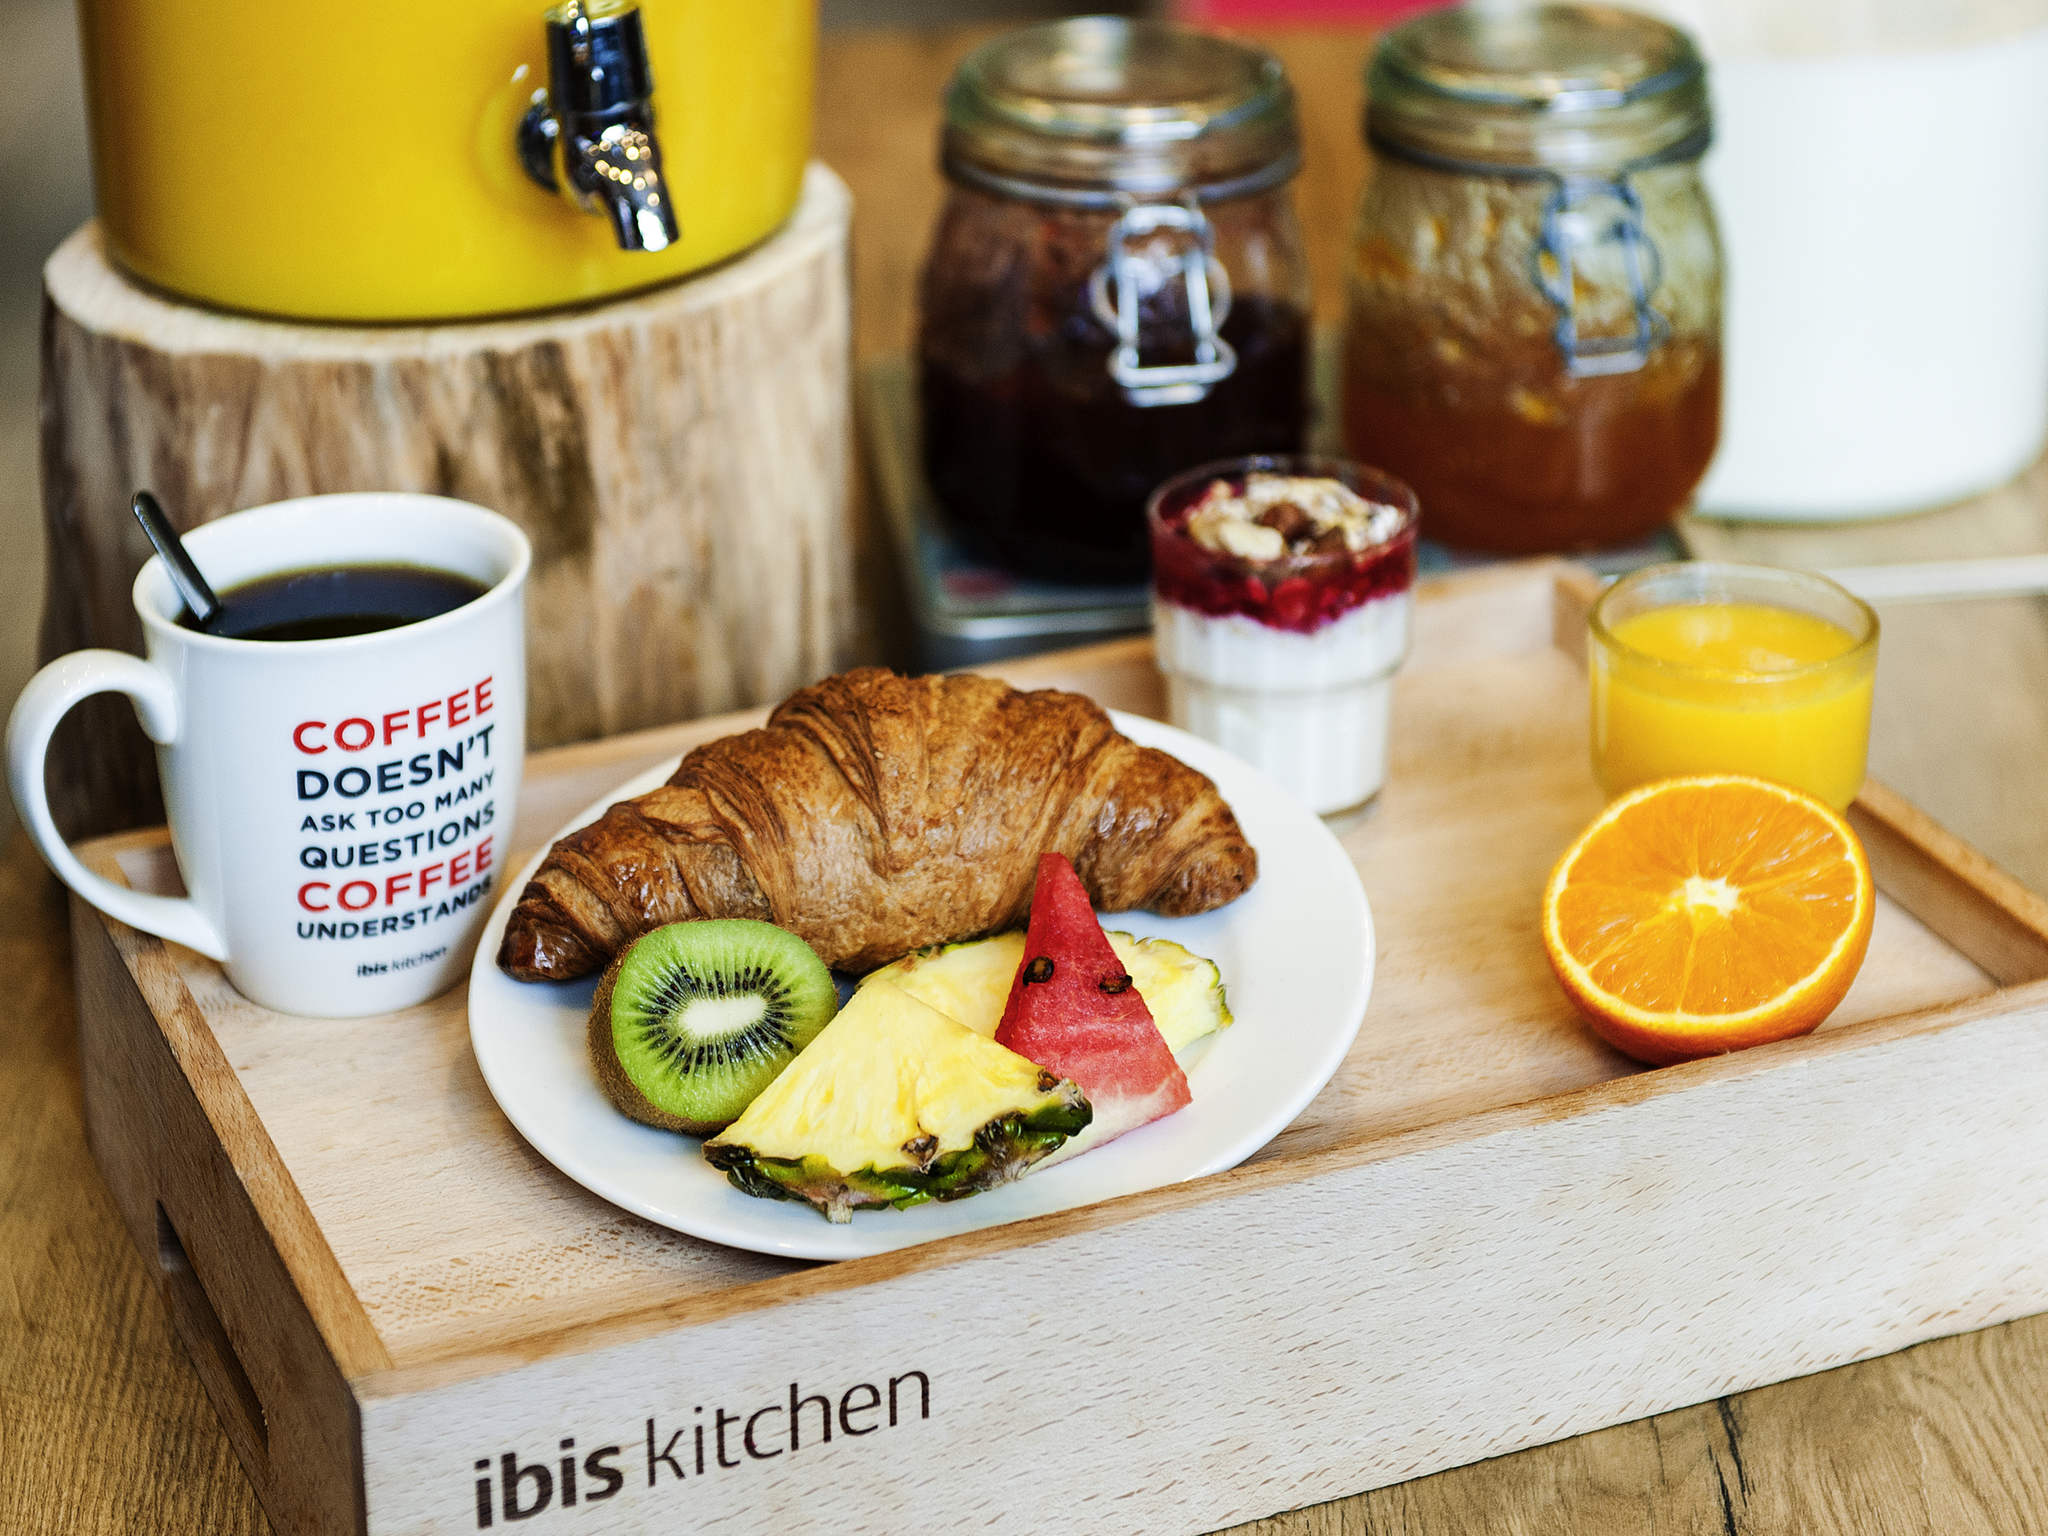 Cheap Hotel Brussels Ibis Near Grand Place Old Town Coffe 2 In1 Isi 15 Breakfast Off